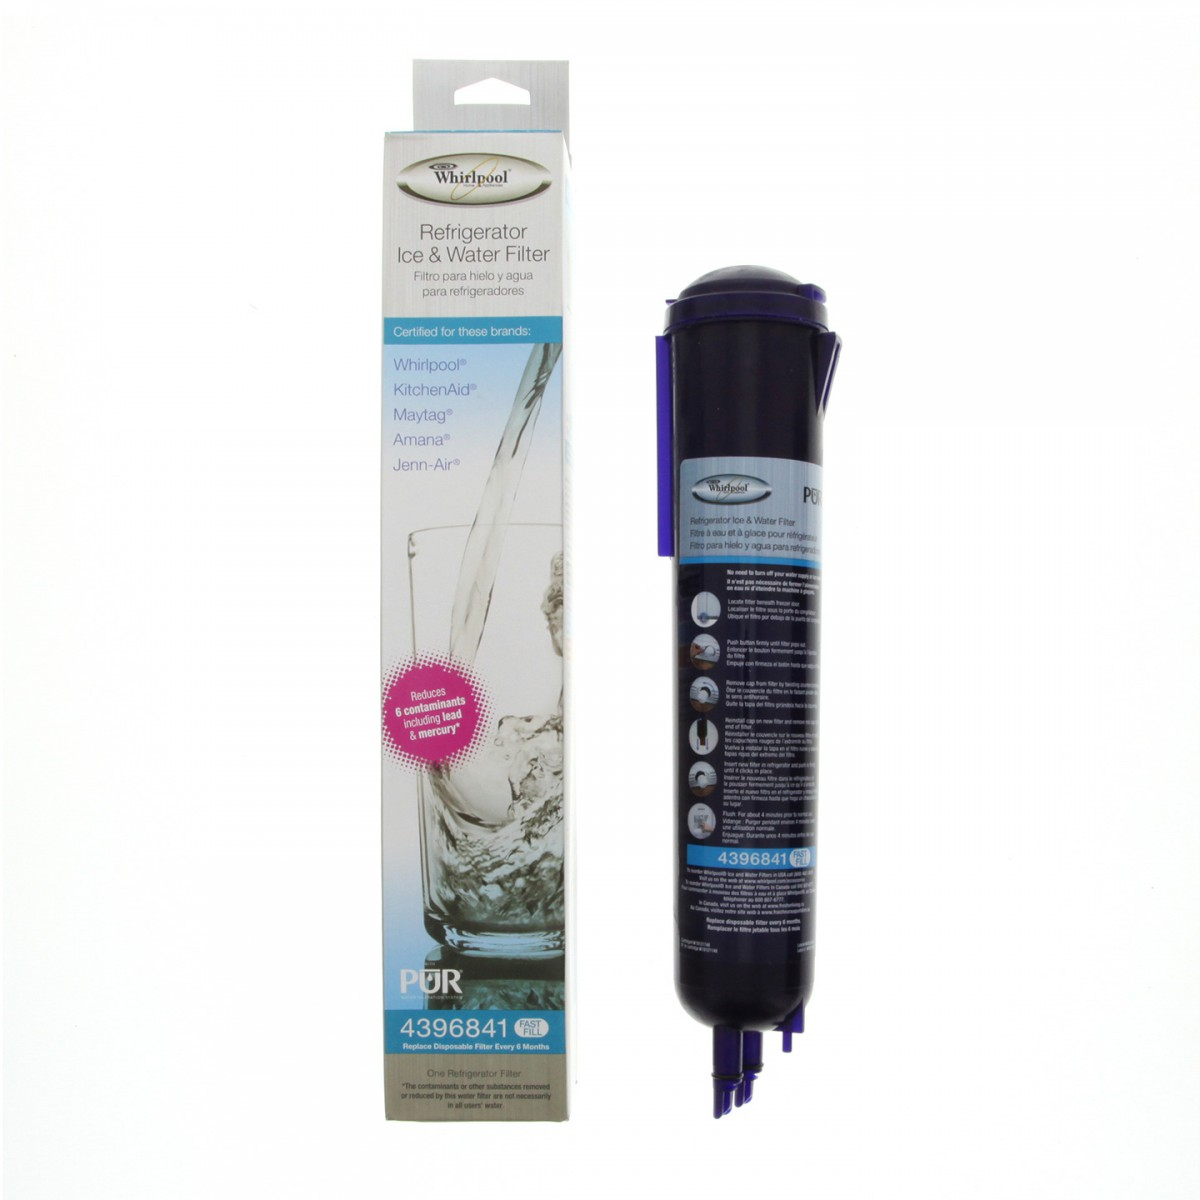 Whirlpool 4396841 genuine oem refrigerator water filter - Whirlpool refrigerator ice and water filter pur ...